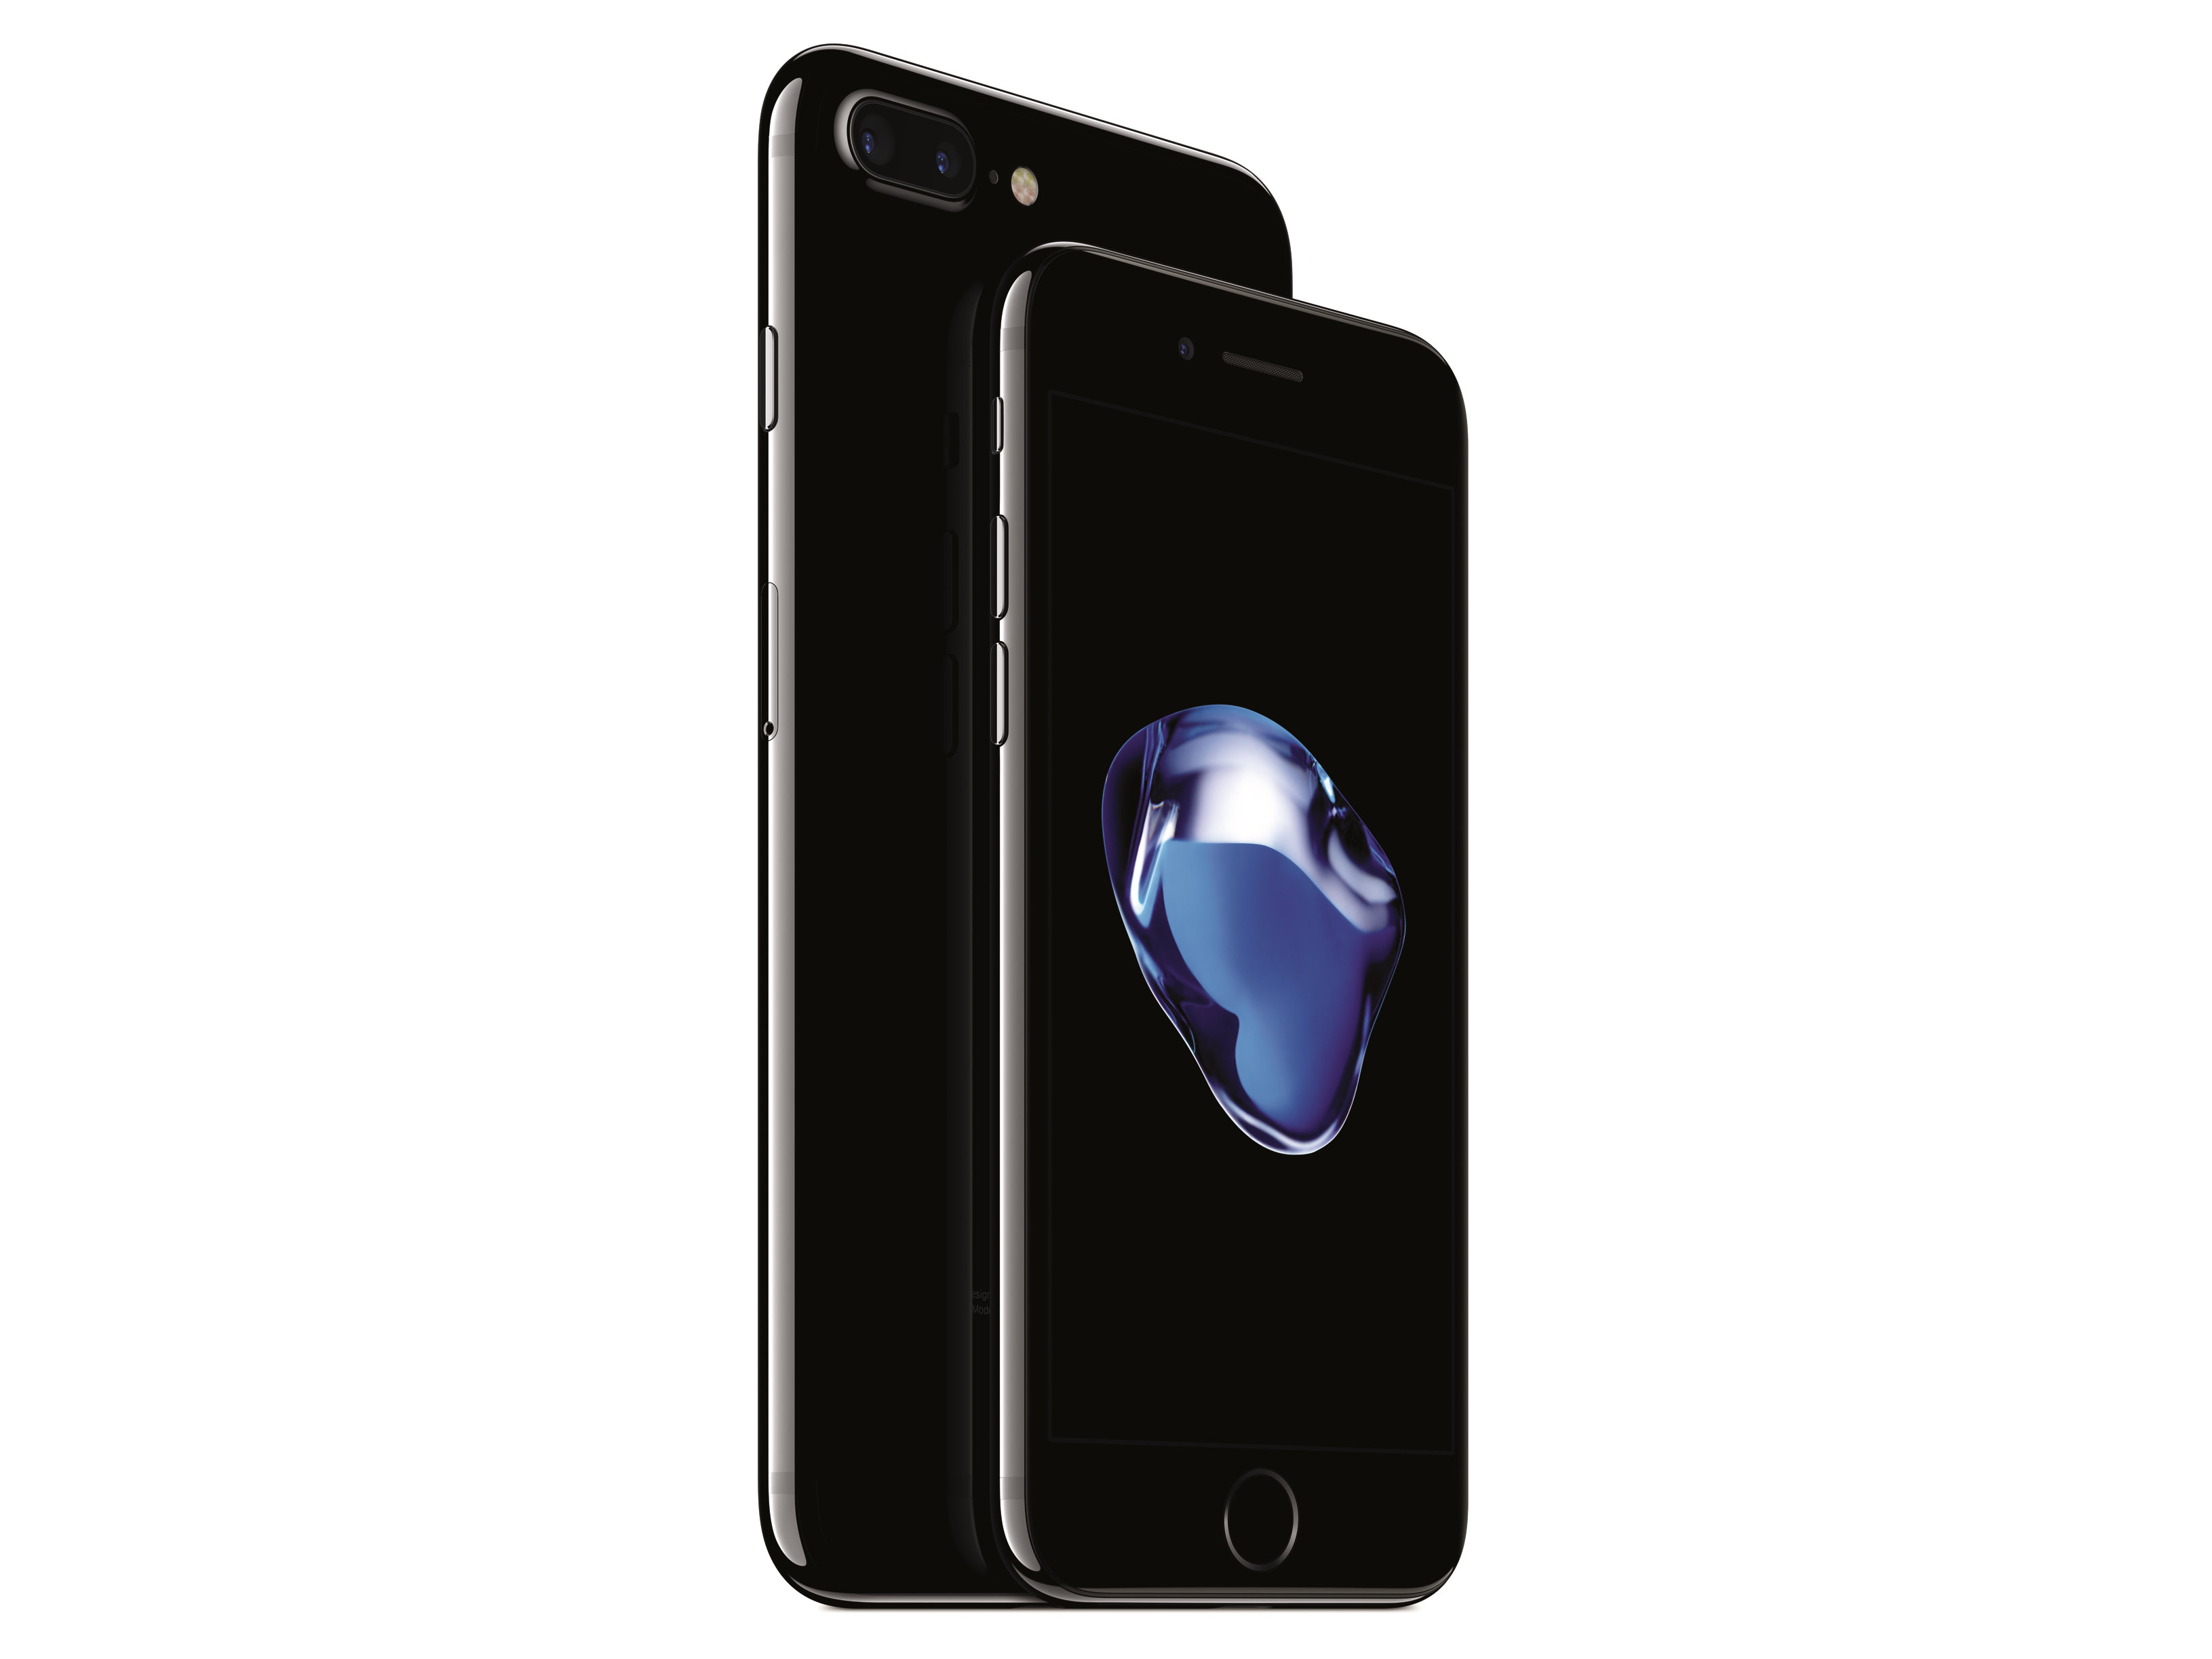 iPhone-7-and-7-Plus-Jet-Black